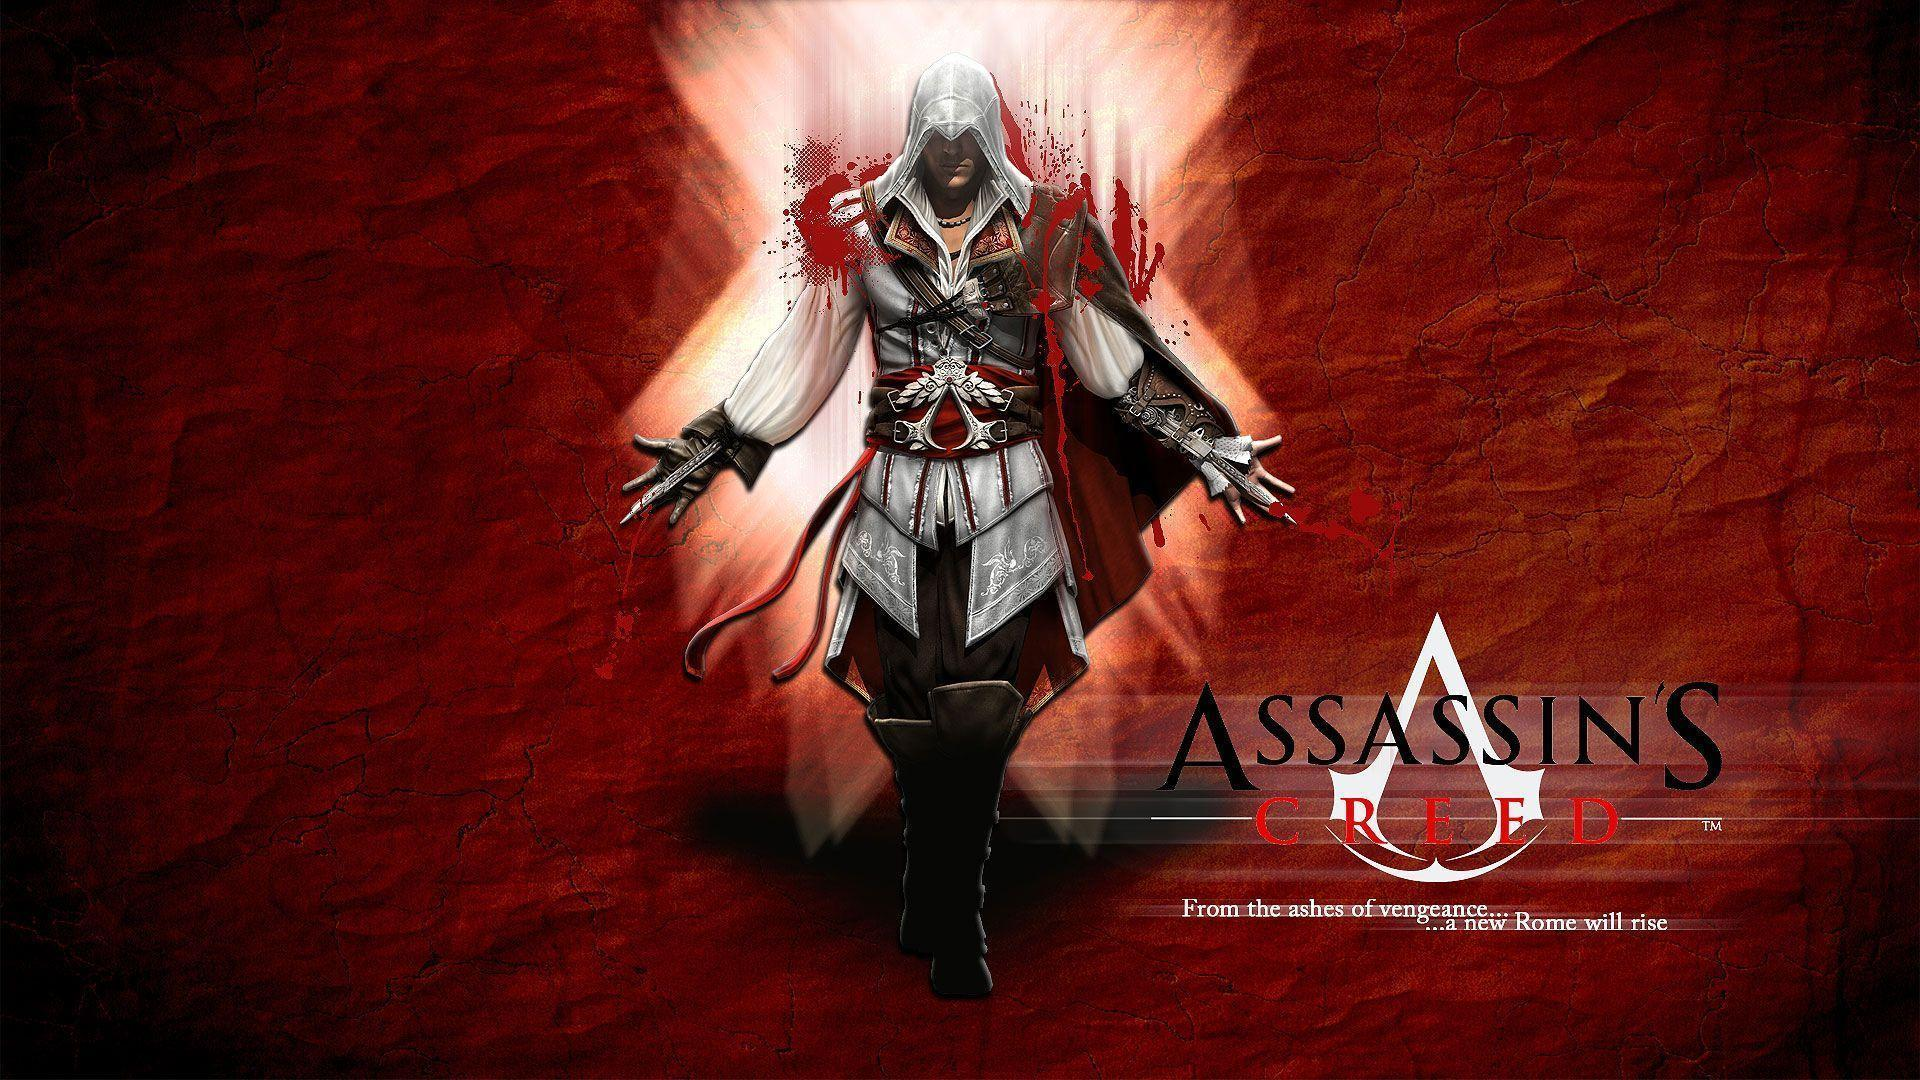 Assassins Creed Desktop Backgrounds 1920x1080